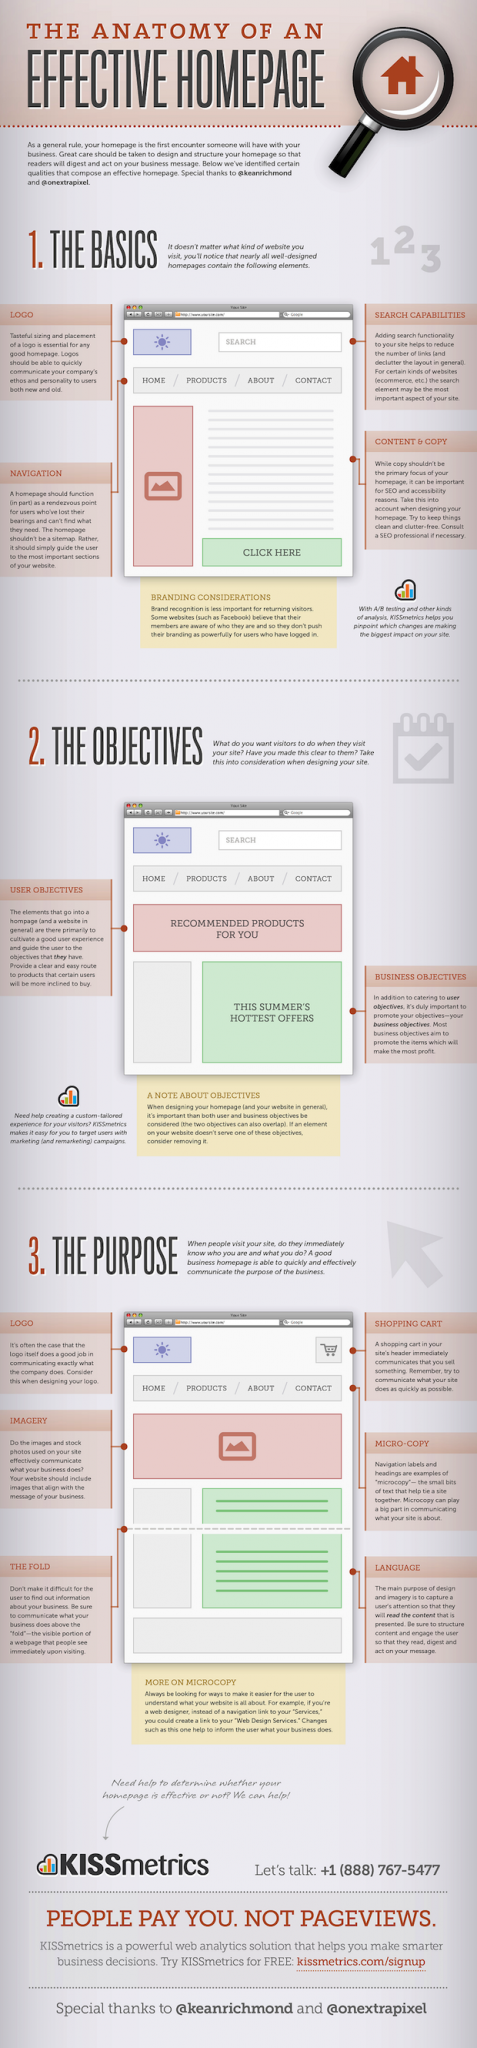 effective homepage infographic